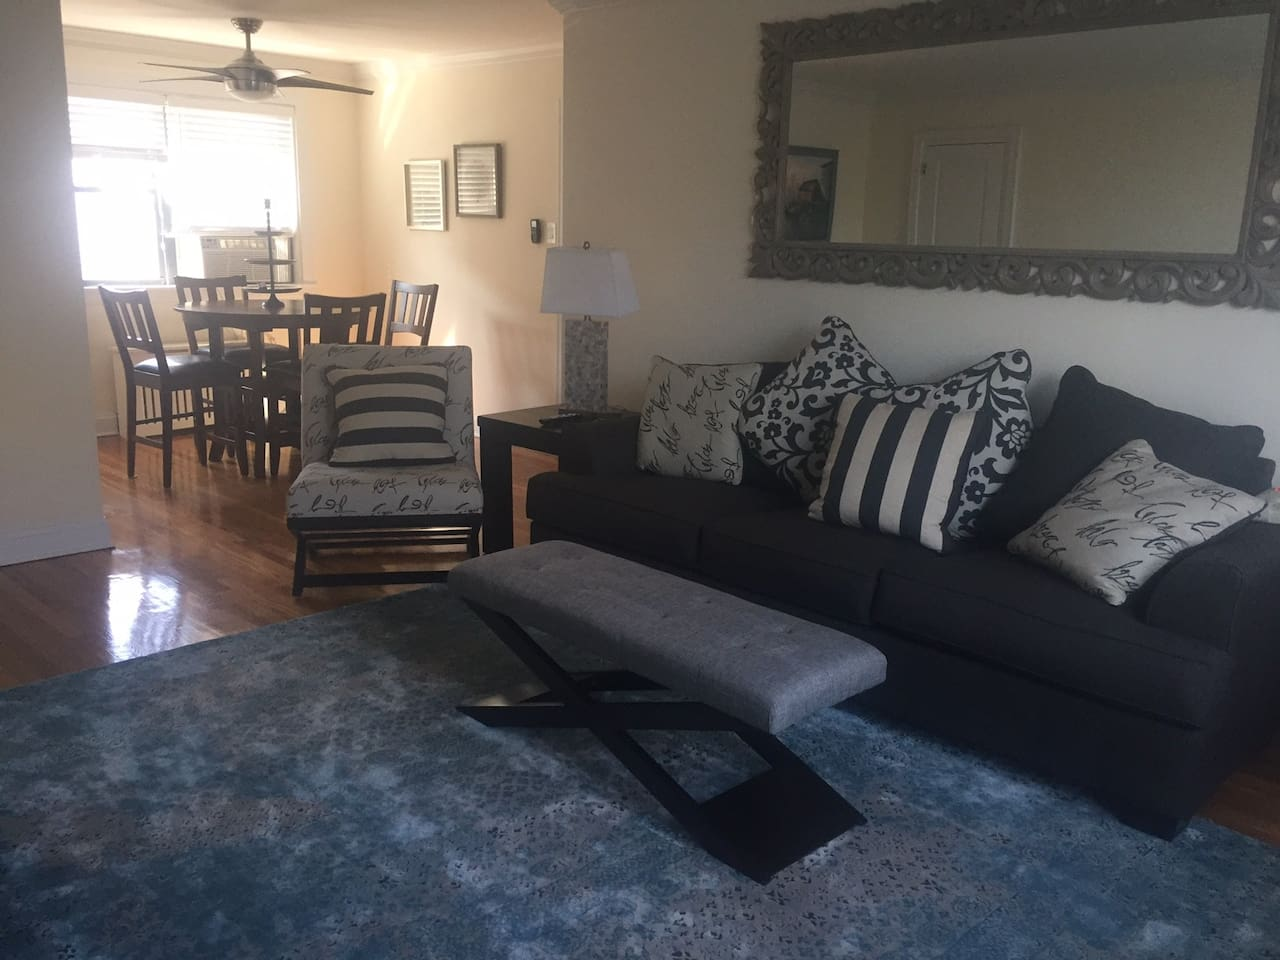 living room with sofa bed leading into dining area.